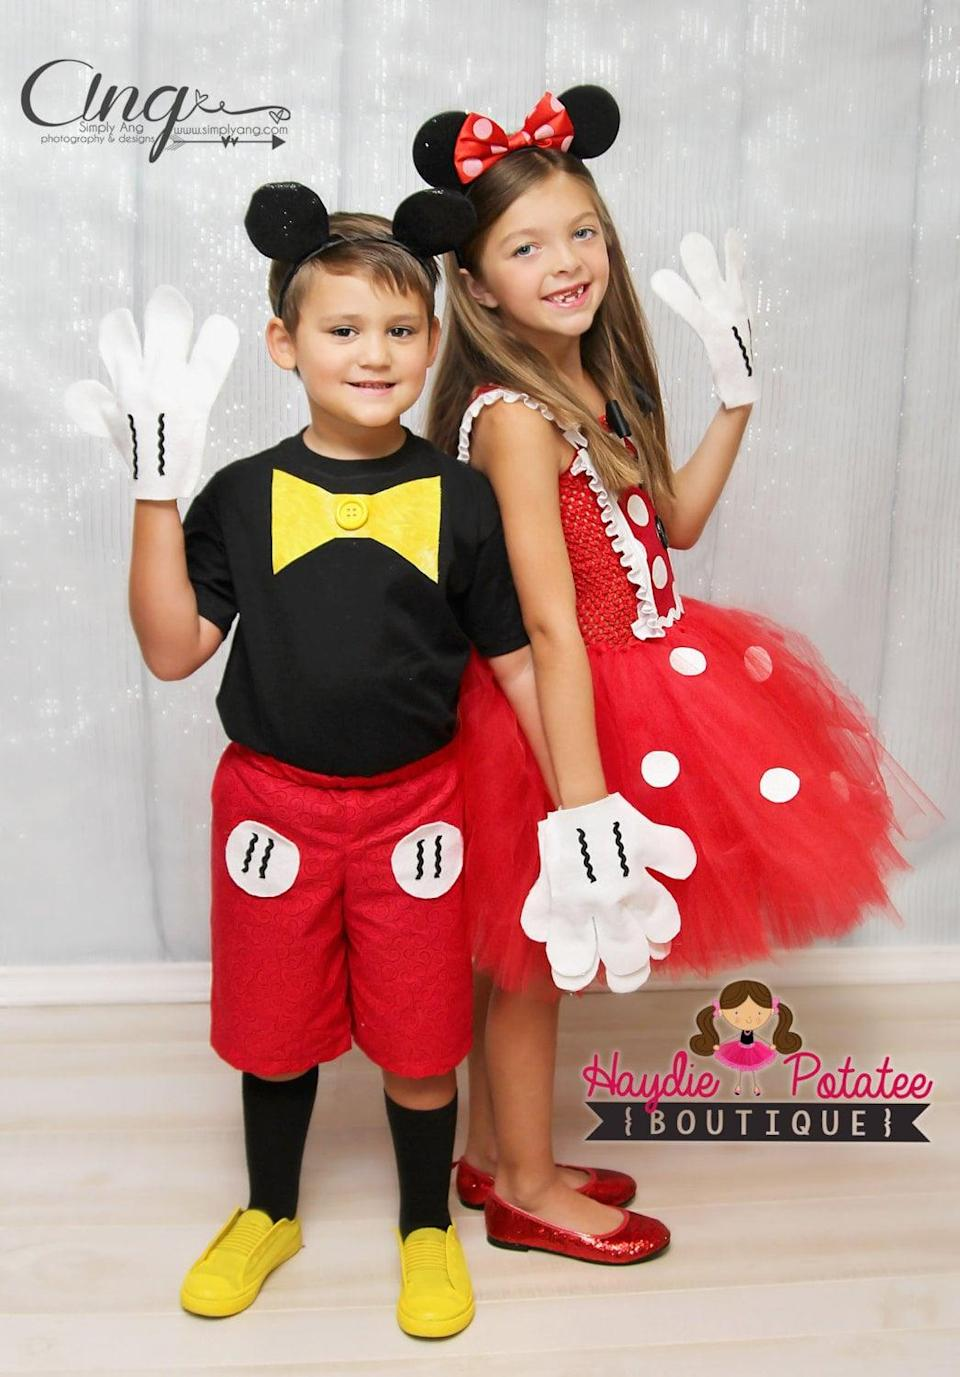 """<p>Everyone's two favorite mice, <span>Mickey and Minnie</span> ($83), are a great way to coordinate <a class=""""link rapid-noclick-resp"""" href=""""https://www.popsugar.com/Halloween"""" rel=""""nofollow noopener"""" target=""""_blank"""" data-ylk=""""slk:Halloween"""">Halloween</a> with siblings!</p>"""